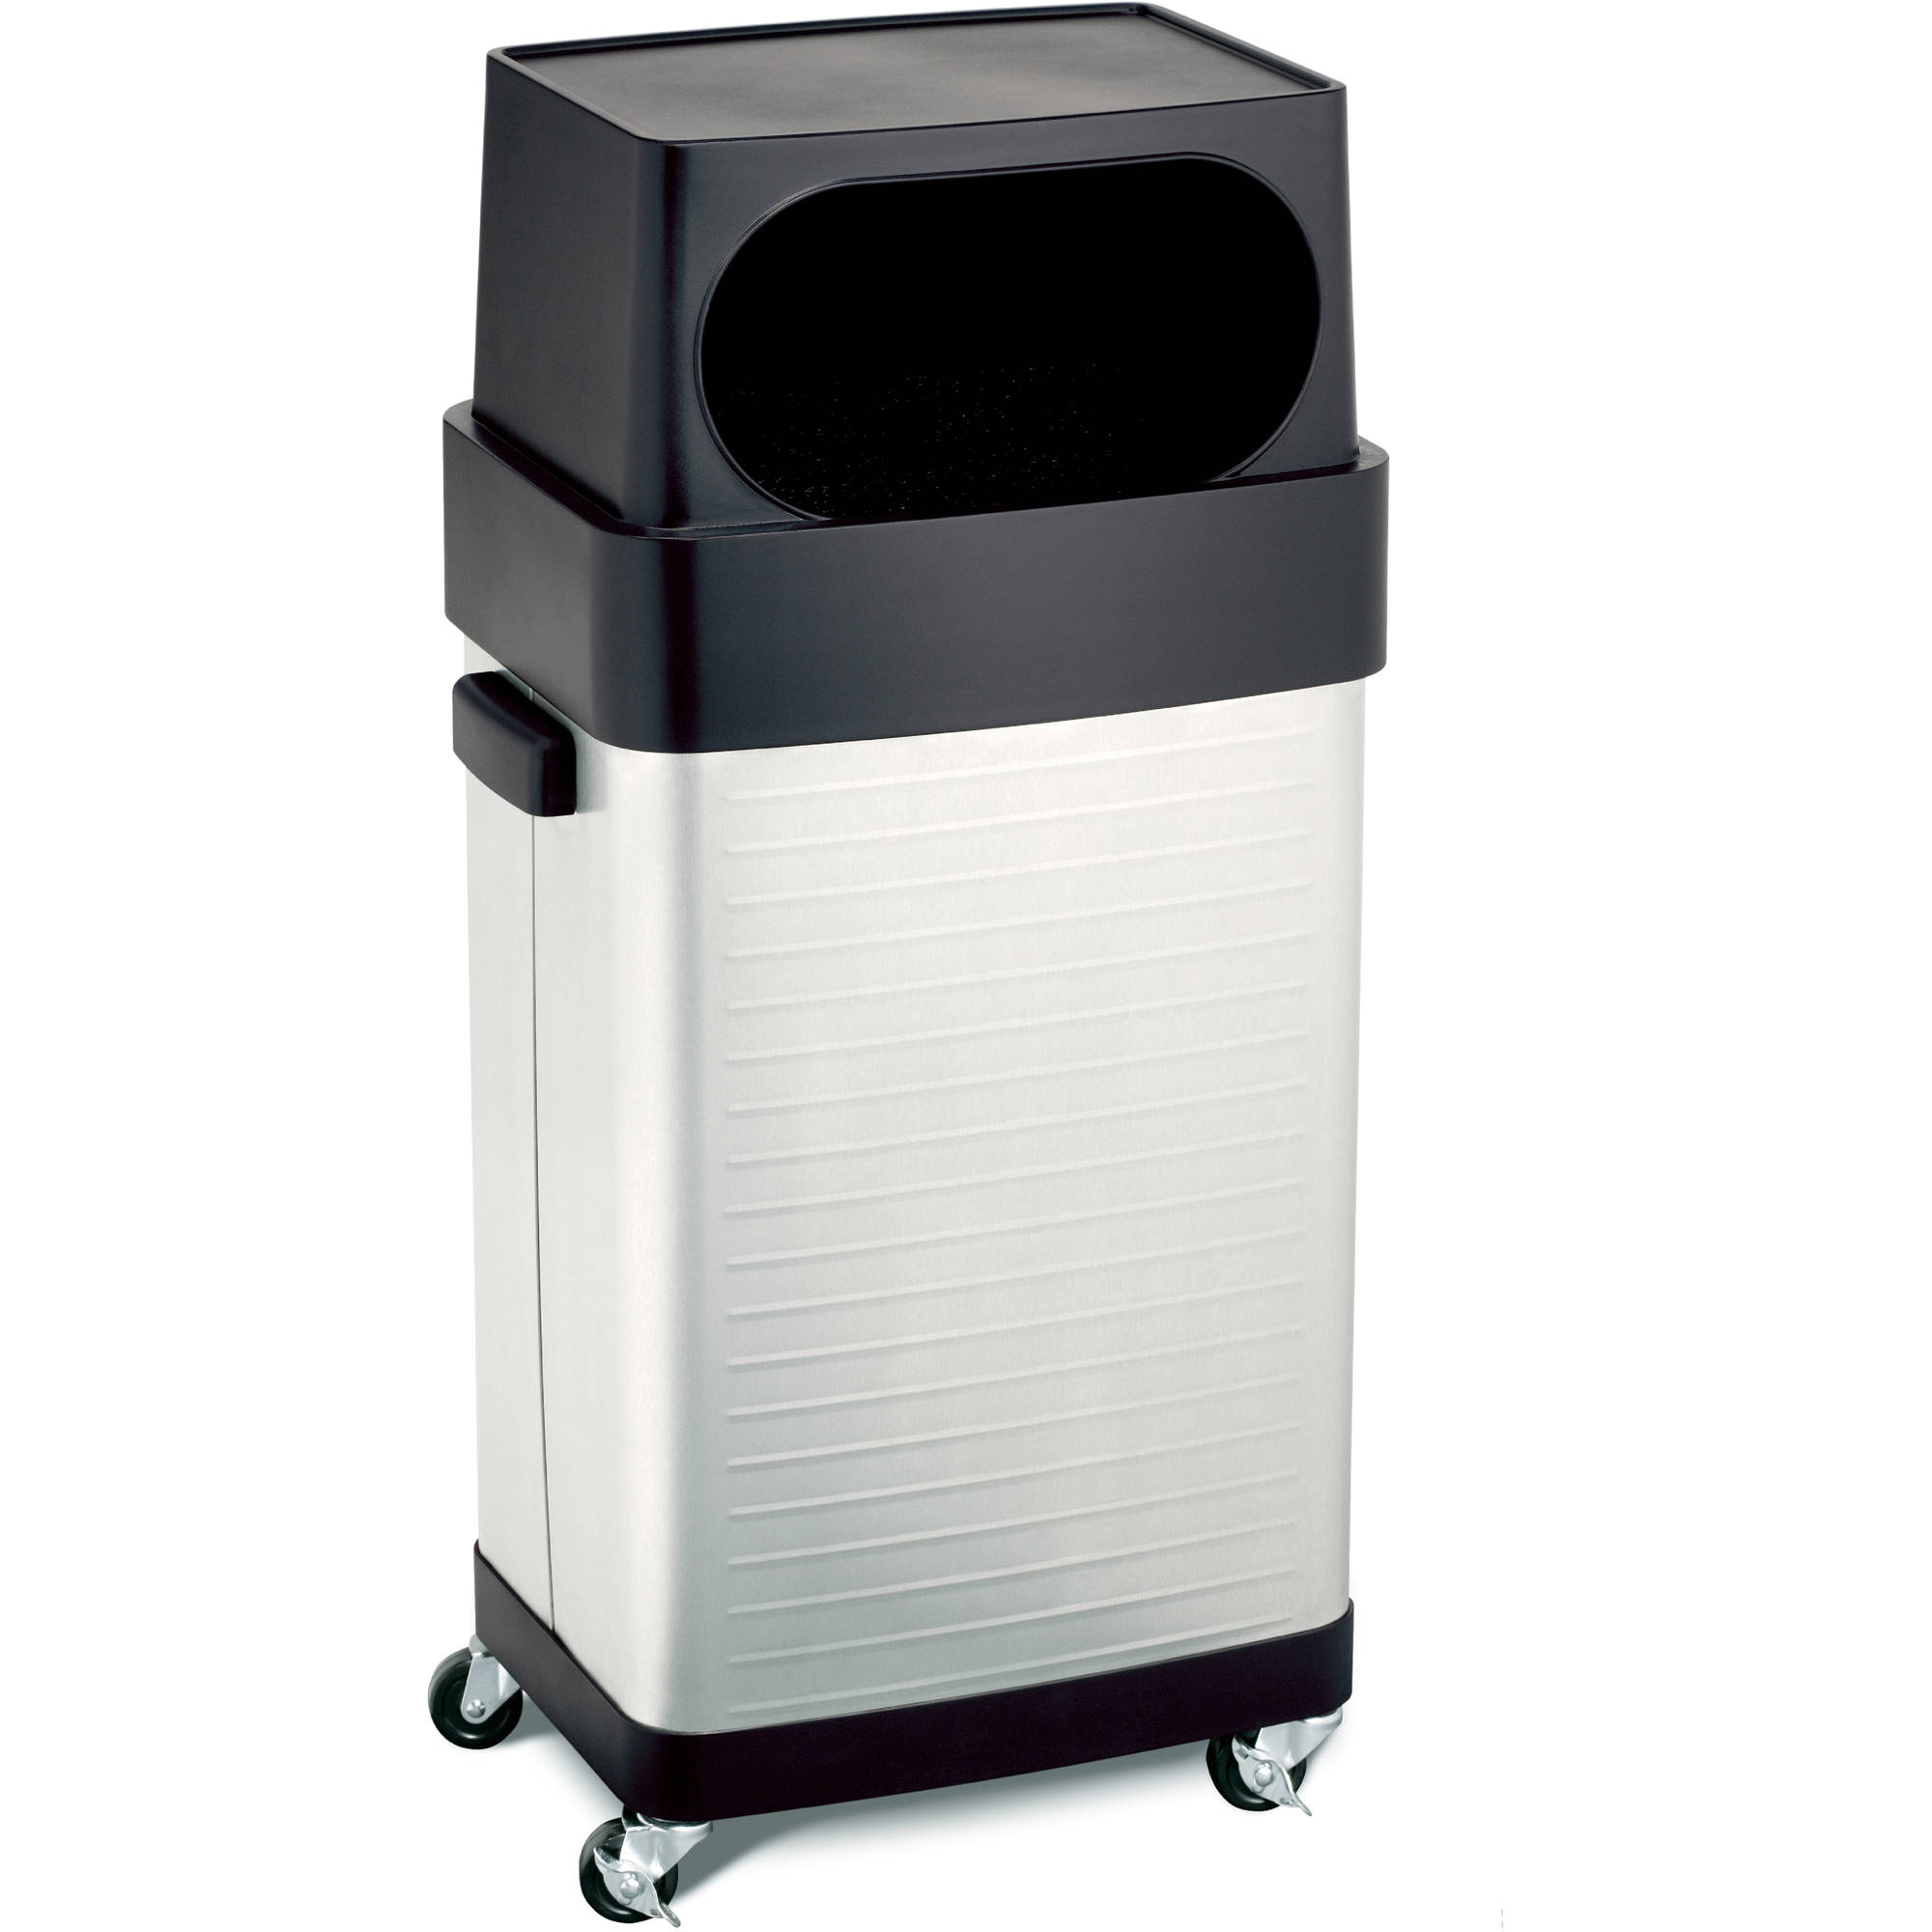 Seville Classics UltraHD 17-Gallon Commercial Stainless Steel Trash Bin